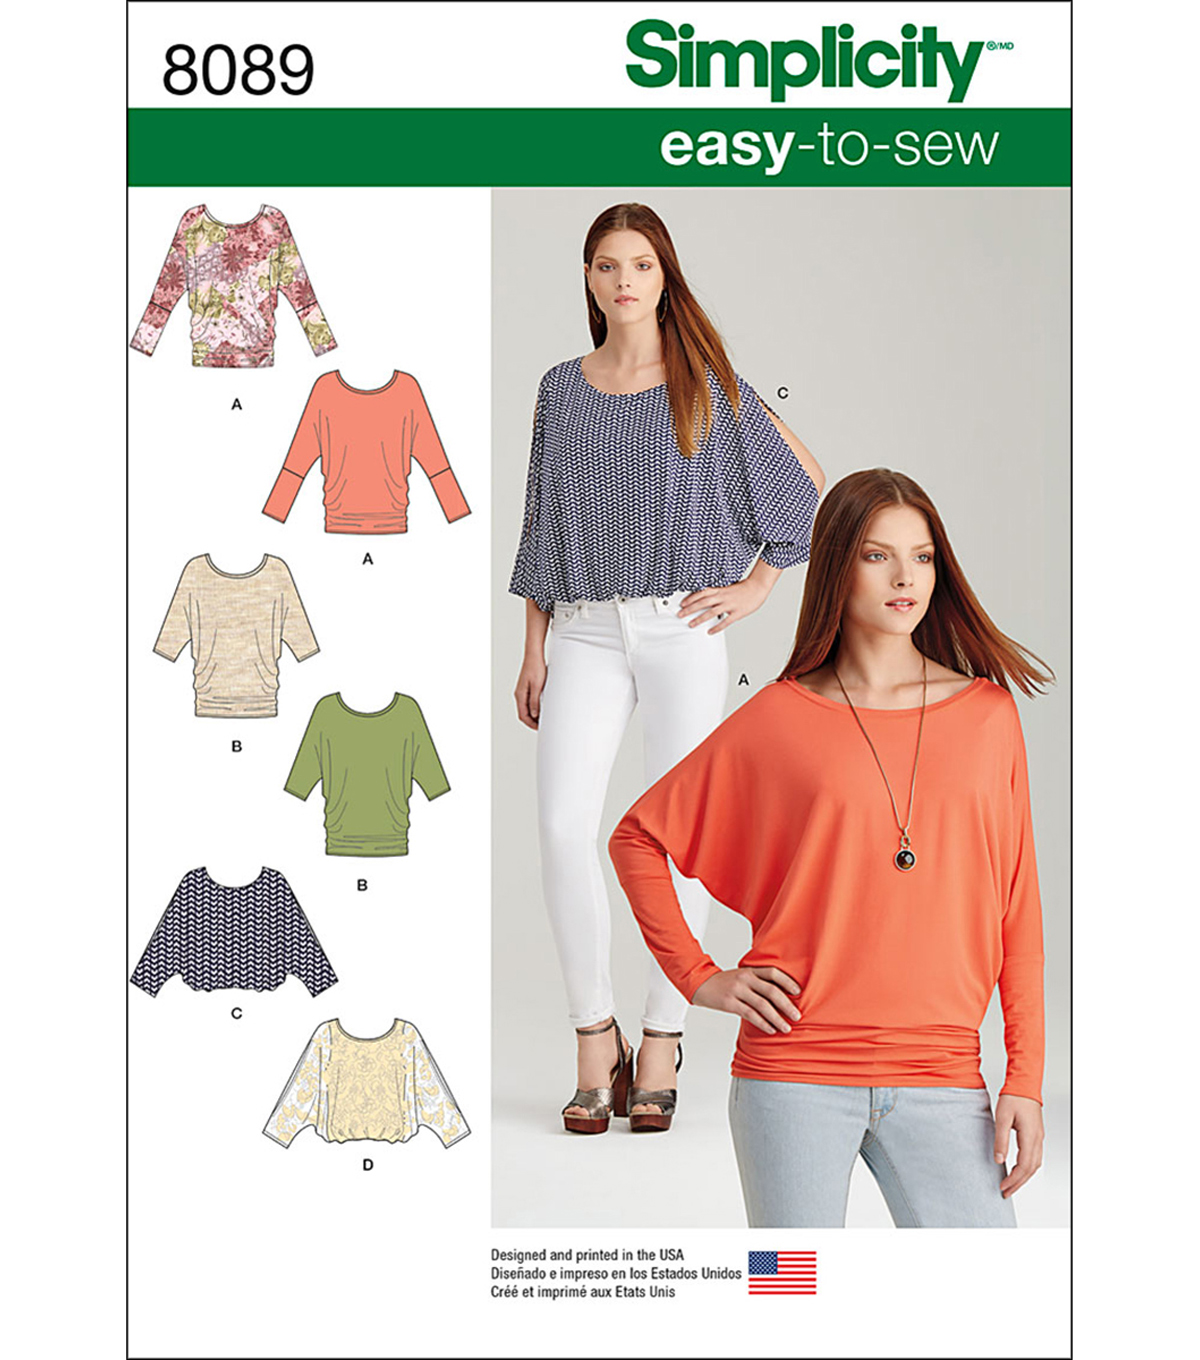 Simplicity Patterns US8089A Tops, Vest, Jkts, Coats-Xxs-Xs-S-M-L-Xl-Xxl